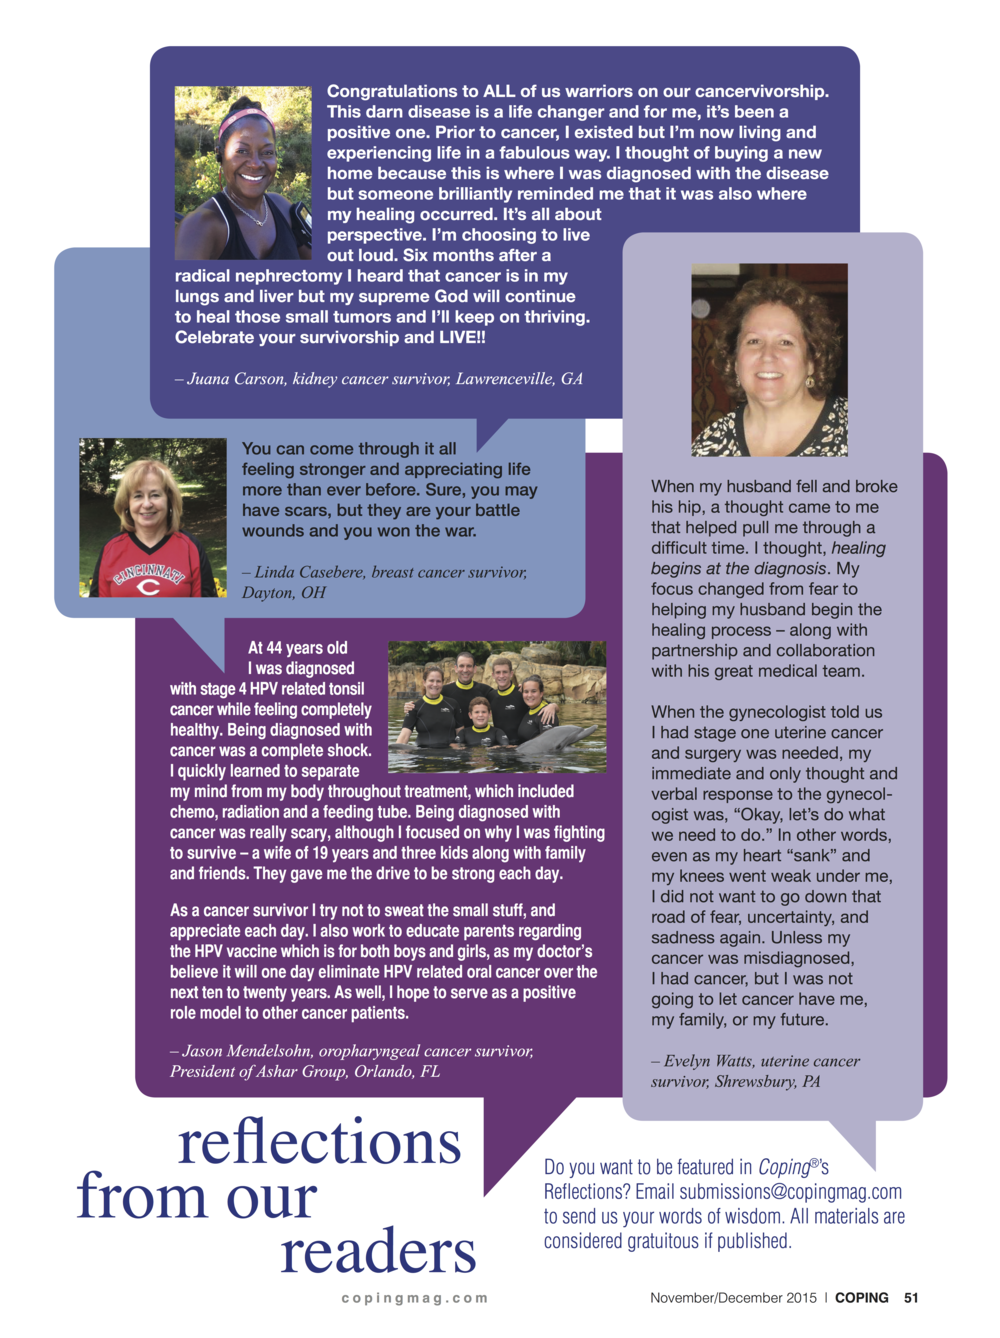 Coping with Cancer Nov Dec 2015 Reflections.png